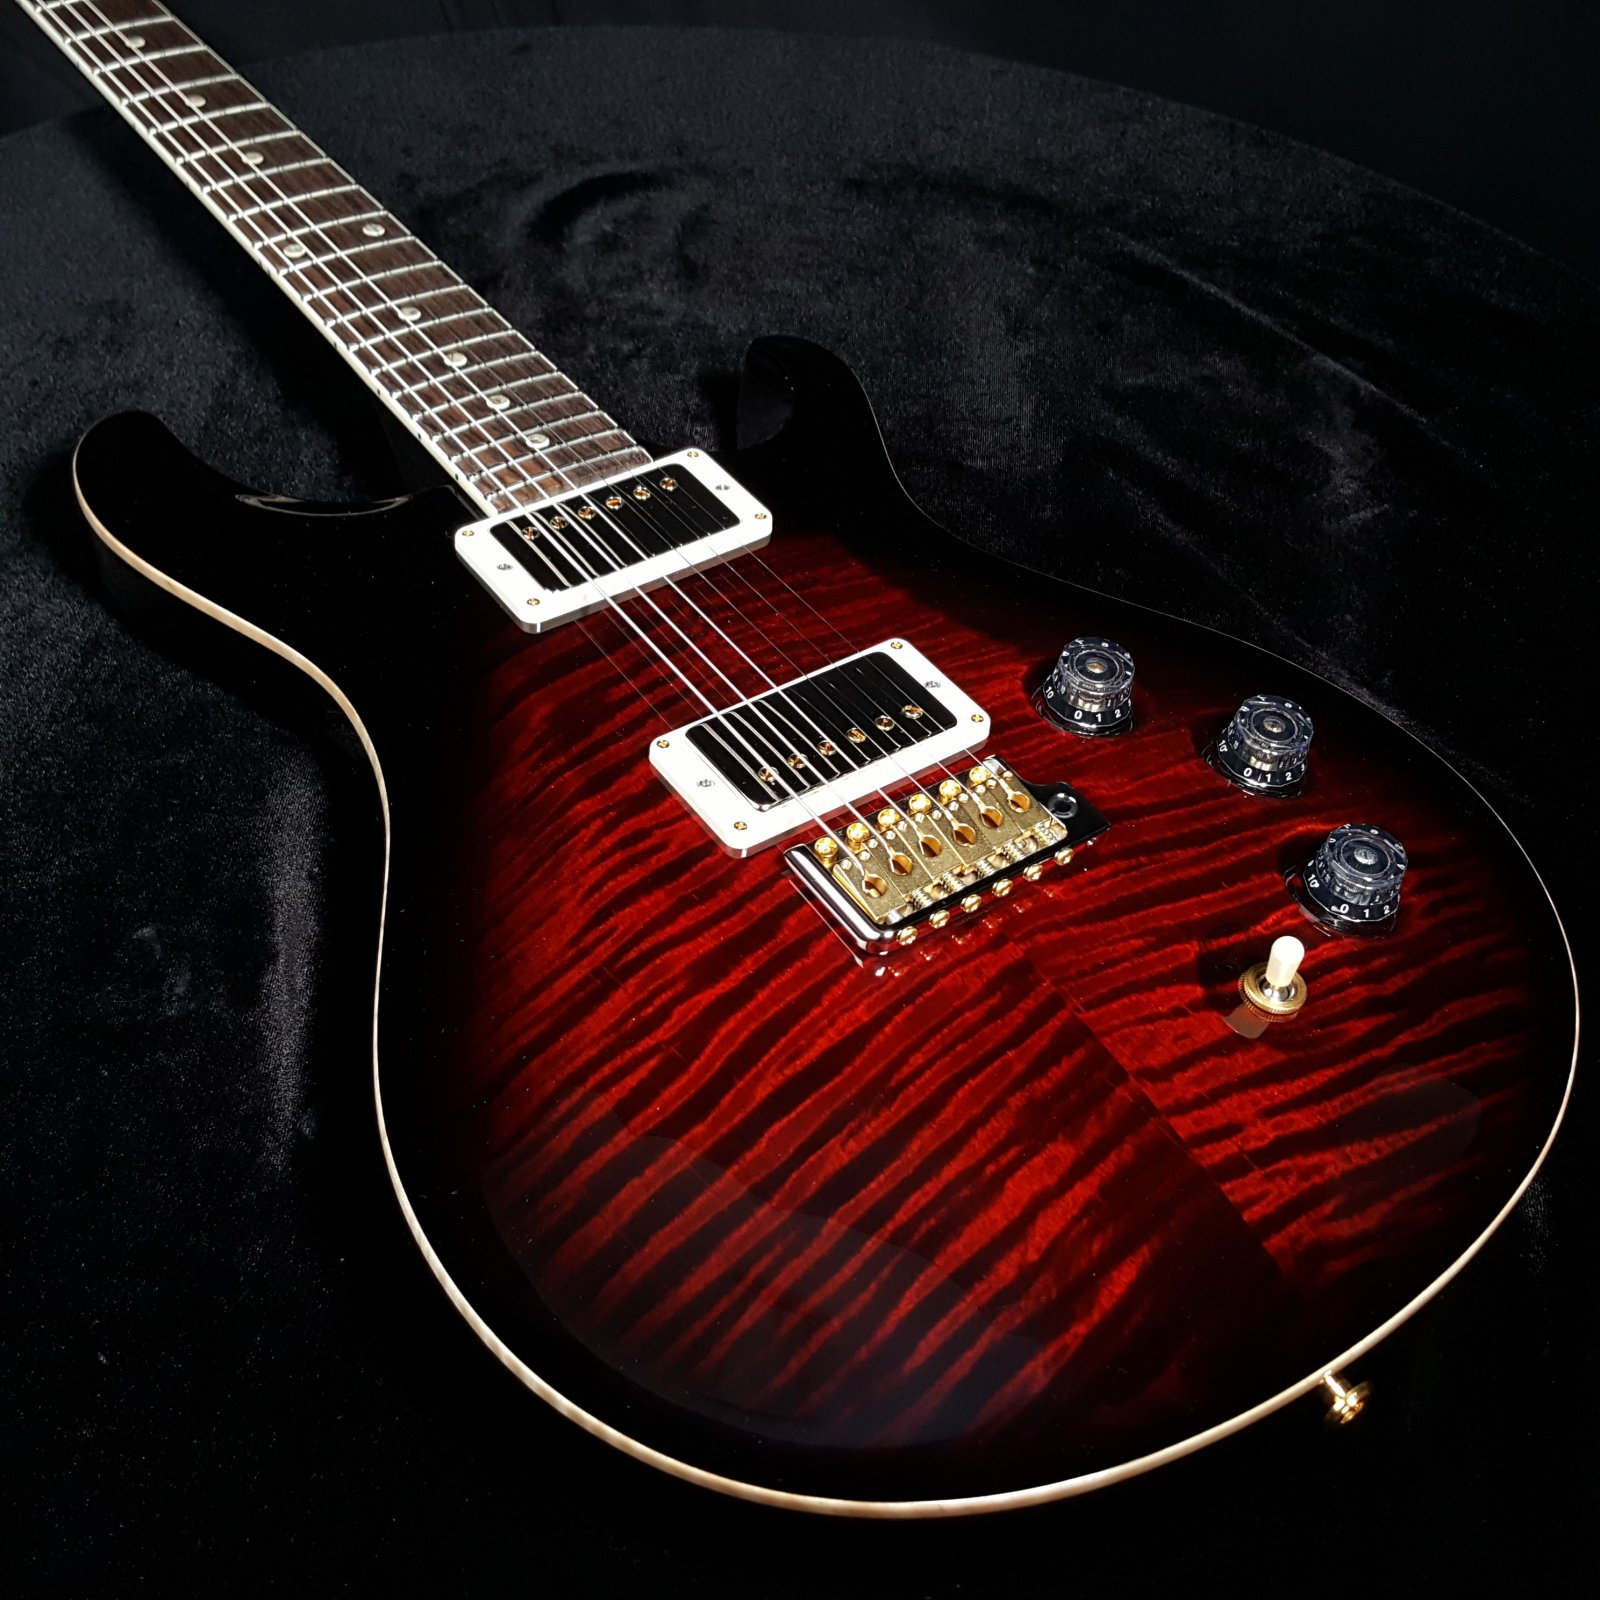 Paul Reed Smith PRS DGT Grissom 10 Top, Fire Red Smokeburst